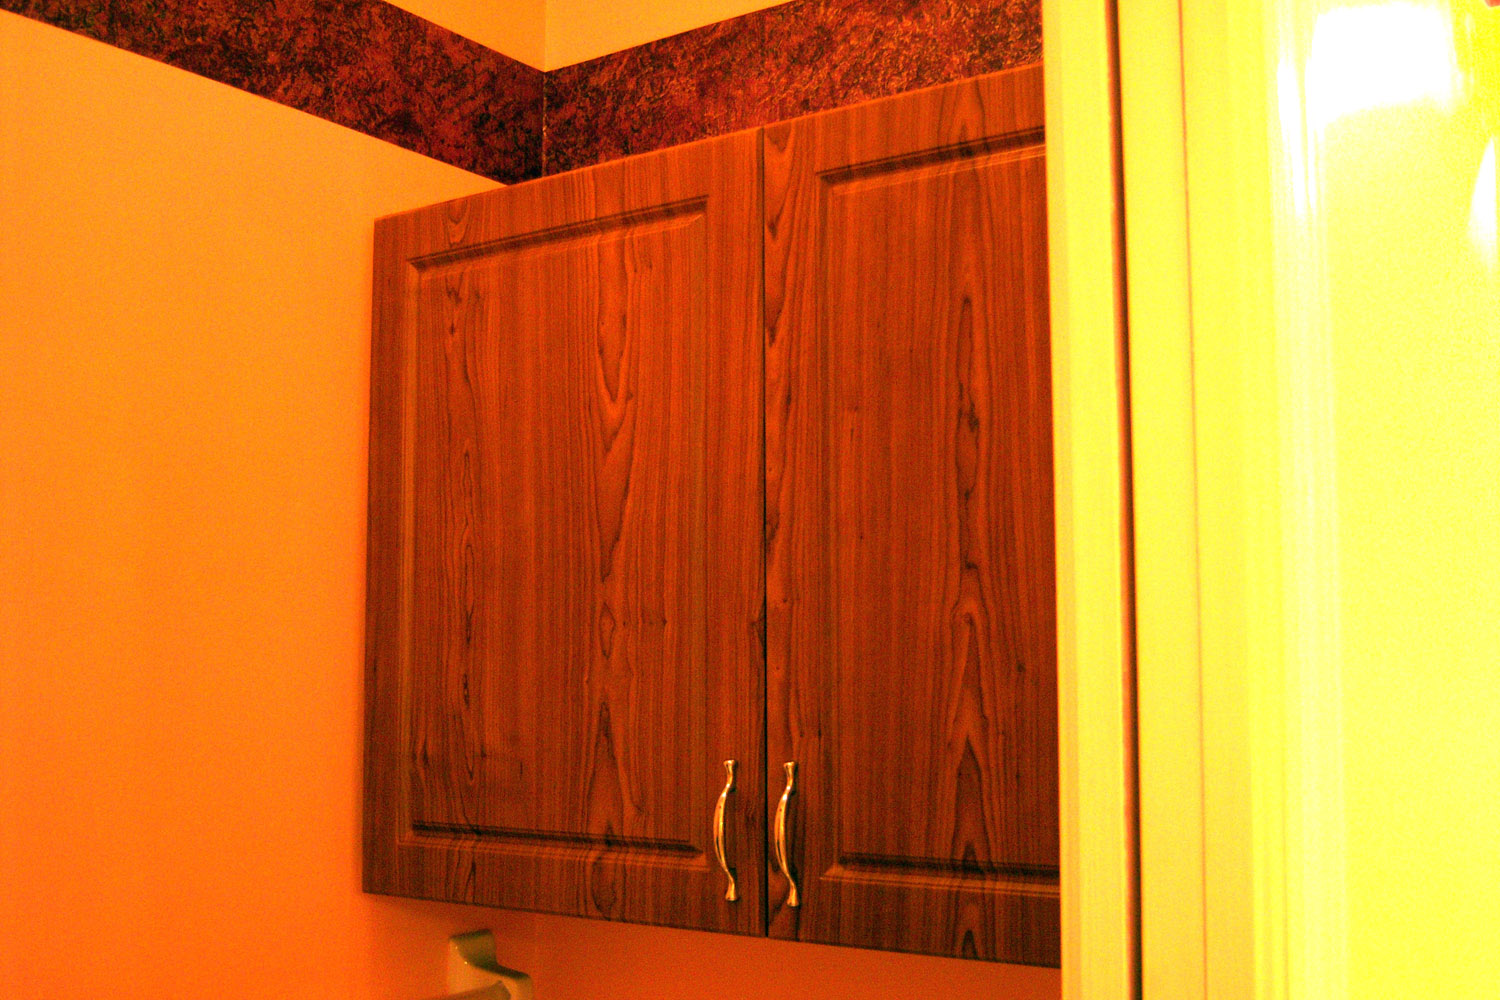 Laundry Room Cabinets After